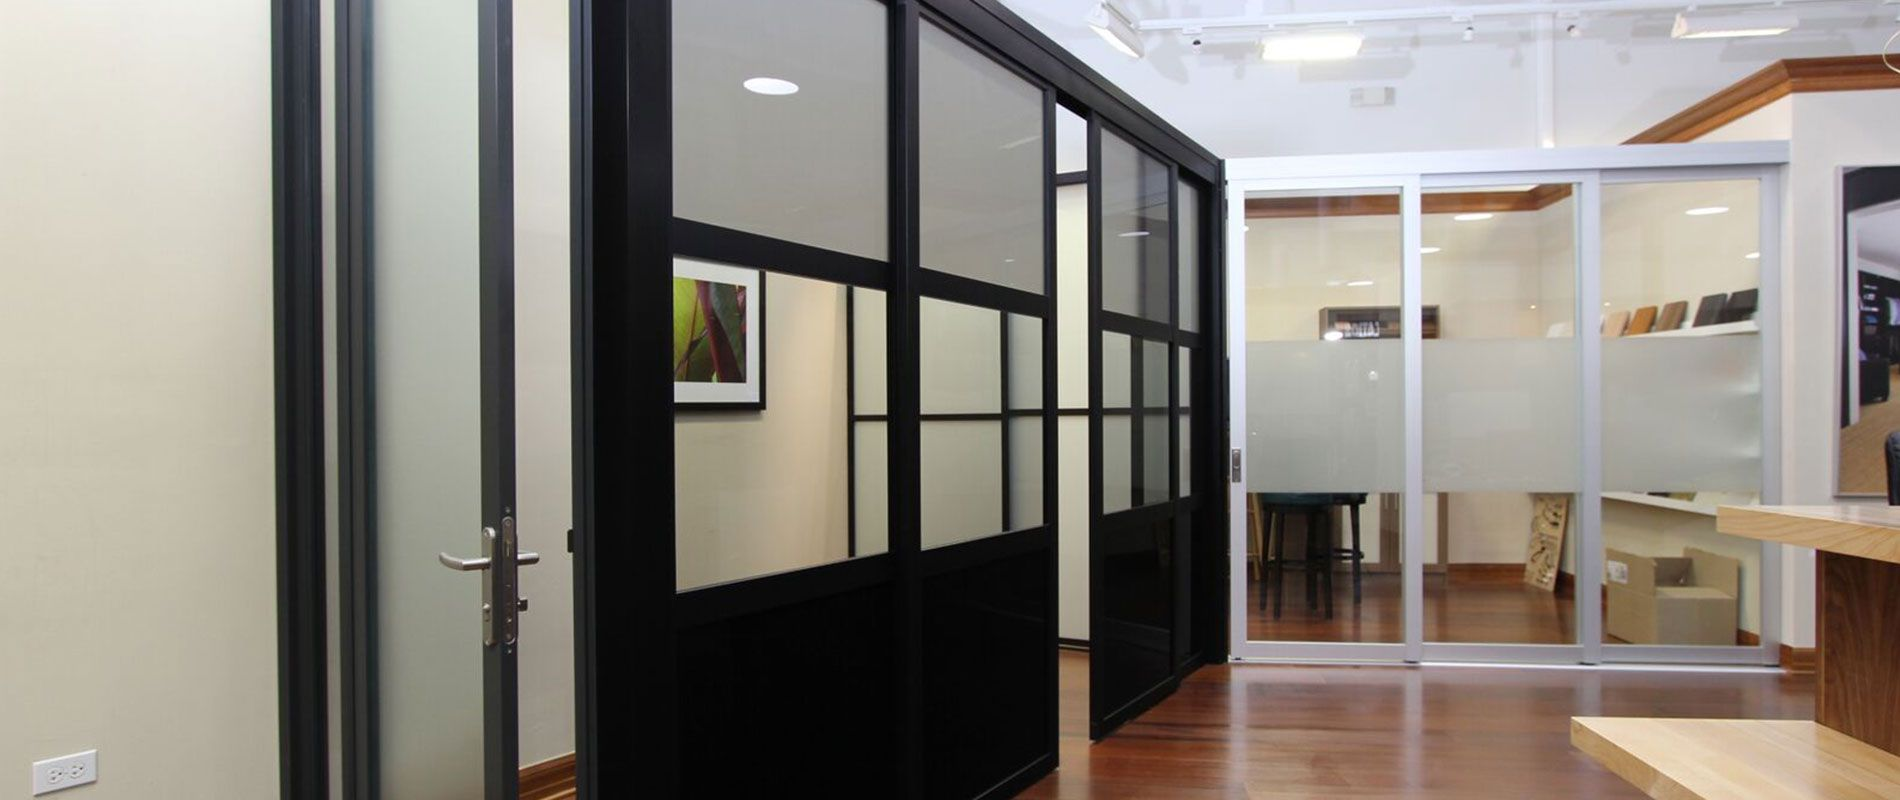 Glass office doors manufacturers - We Manufacture Install Glass Office Partitions Cubicles Enclosures Room Dividers Privacy Walls Doors In Clear To Opaque Glass Styles